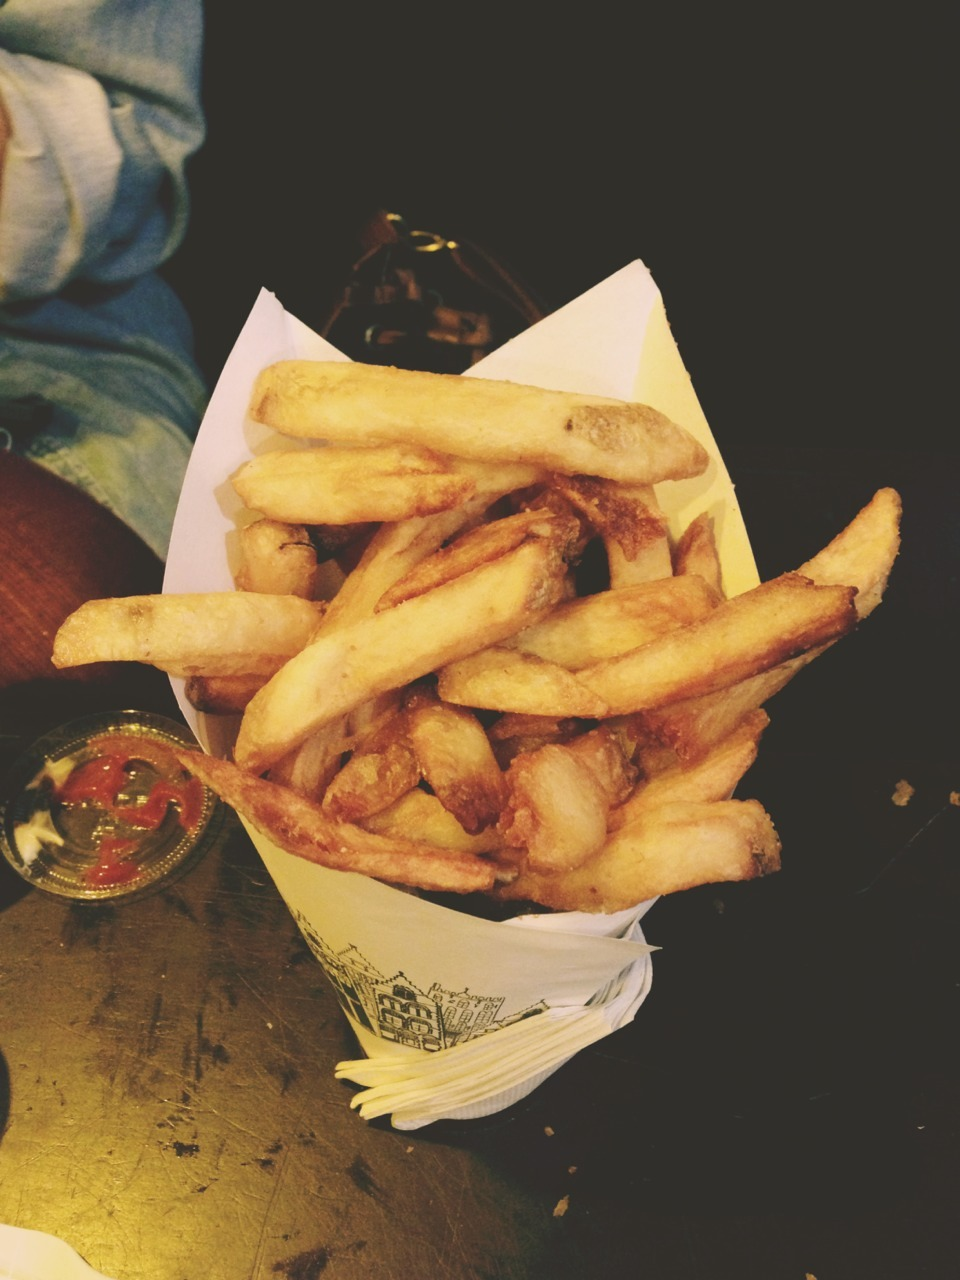 Pommes Frites adventure with the siblings.